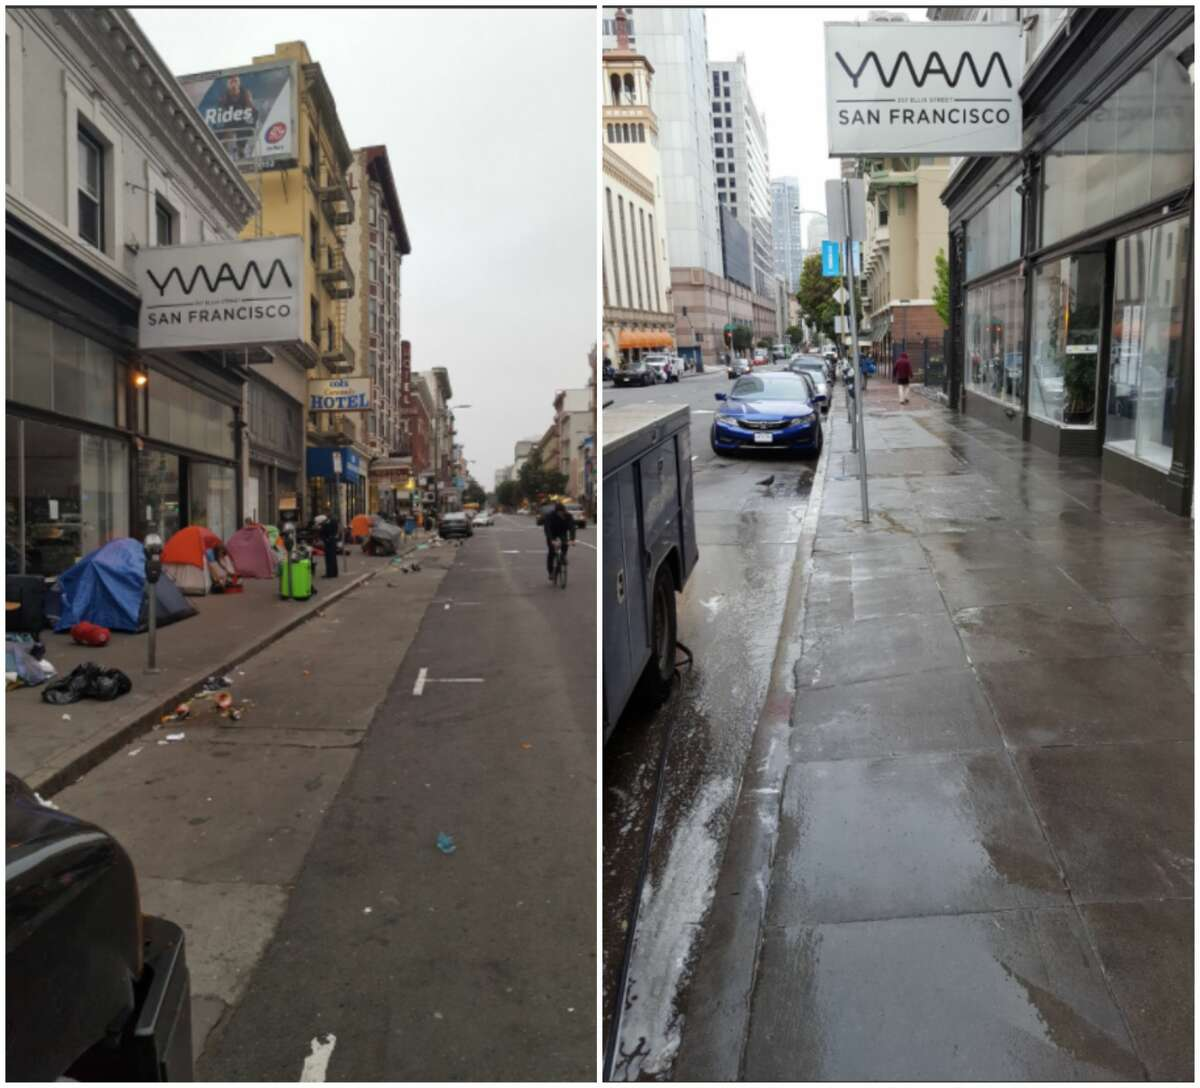 SFPD's Tenderloin station shared before-and-after images of a tent removal in the Tenderloin on April 25, 2018.Despite high-profile sweeps throughout the past year, sit-lie and improper lodging tickets have actually been trending down in recent years.